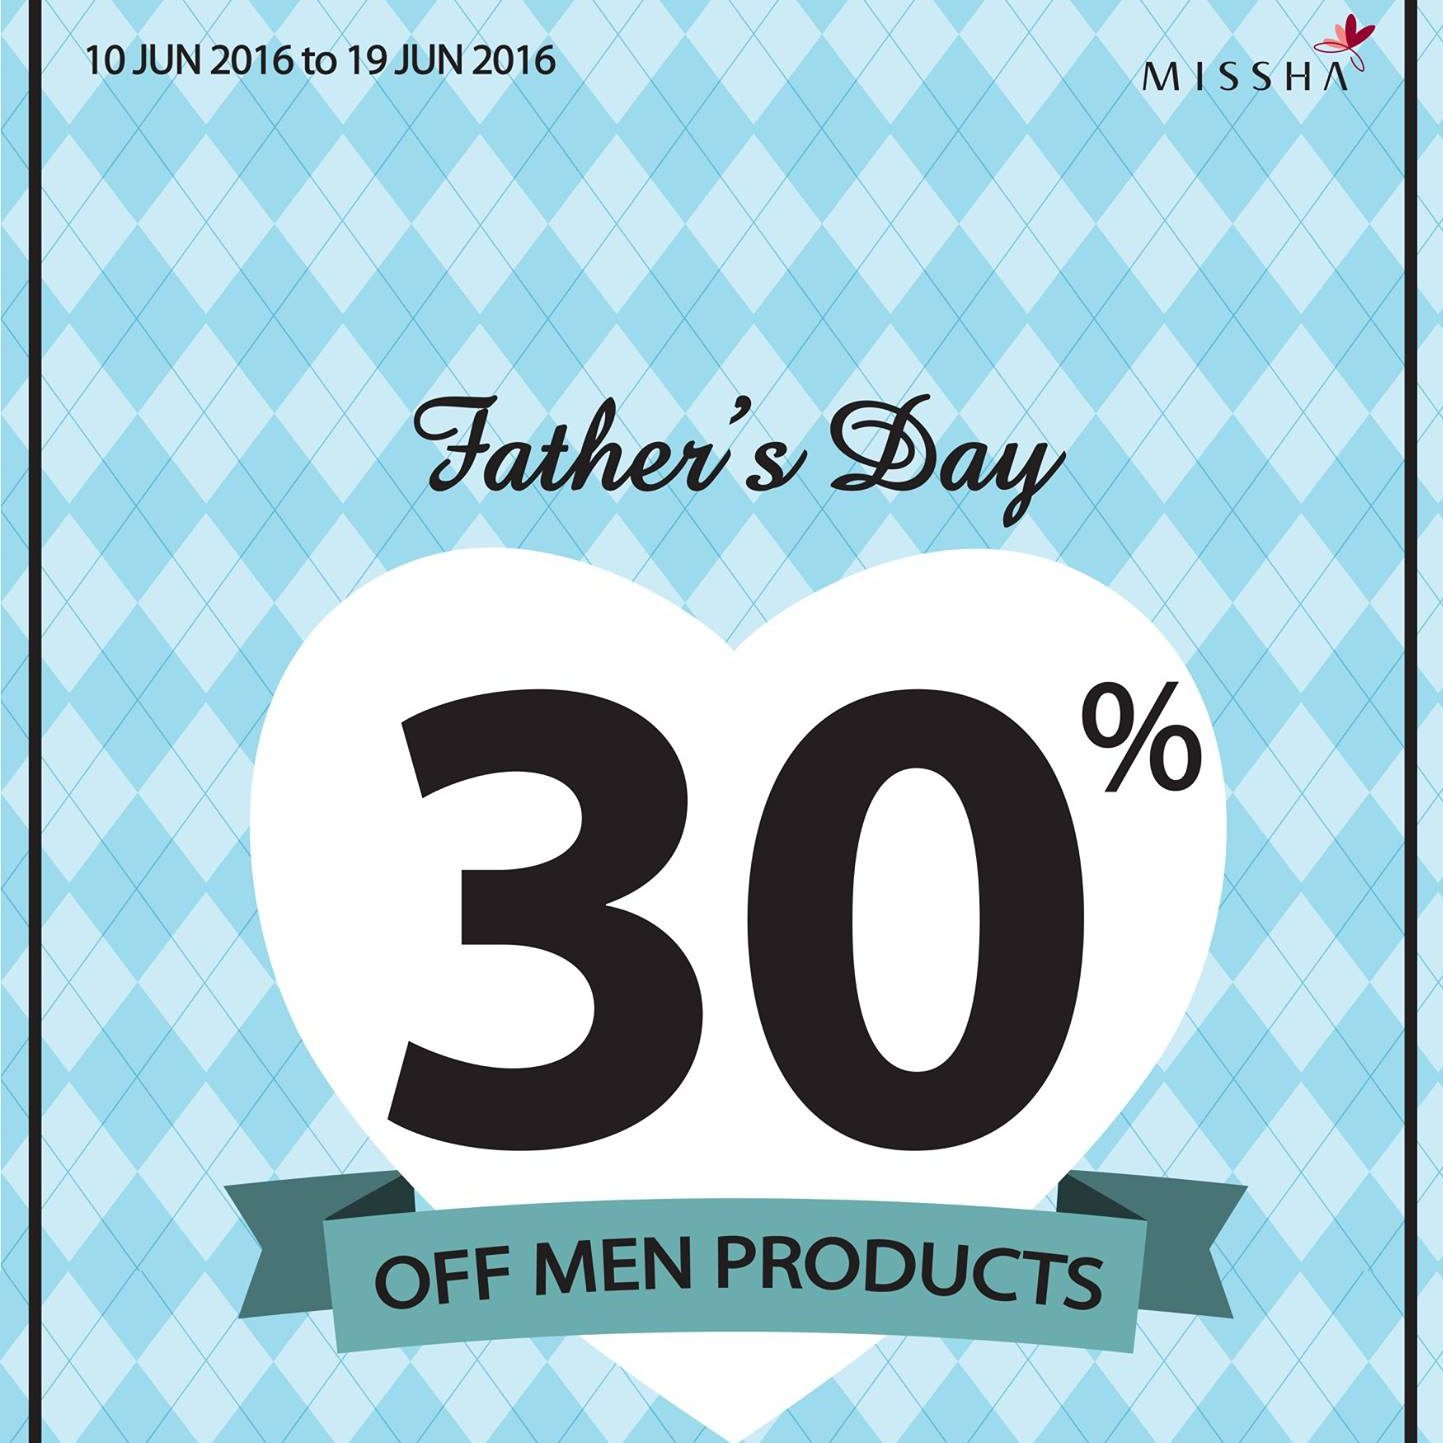 Missha SG Father's Day 30% Off Men Products 10 to 19 Jun 2016